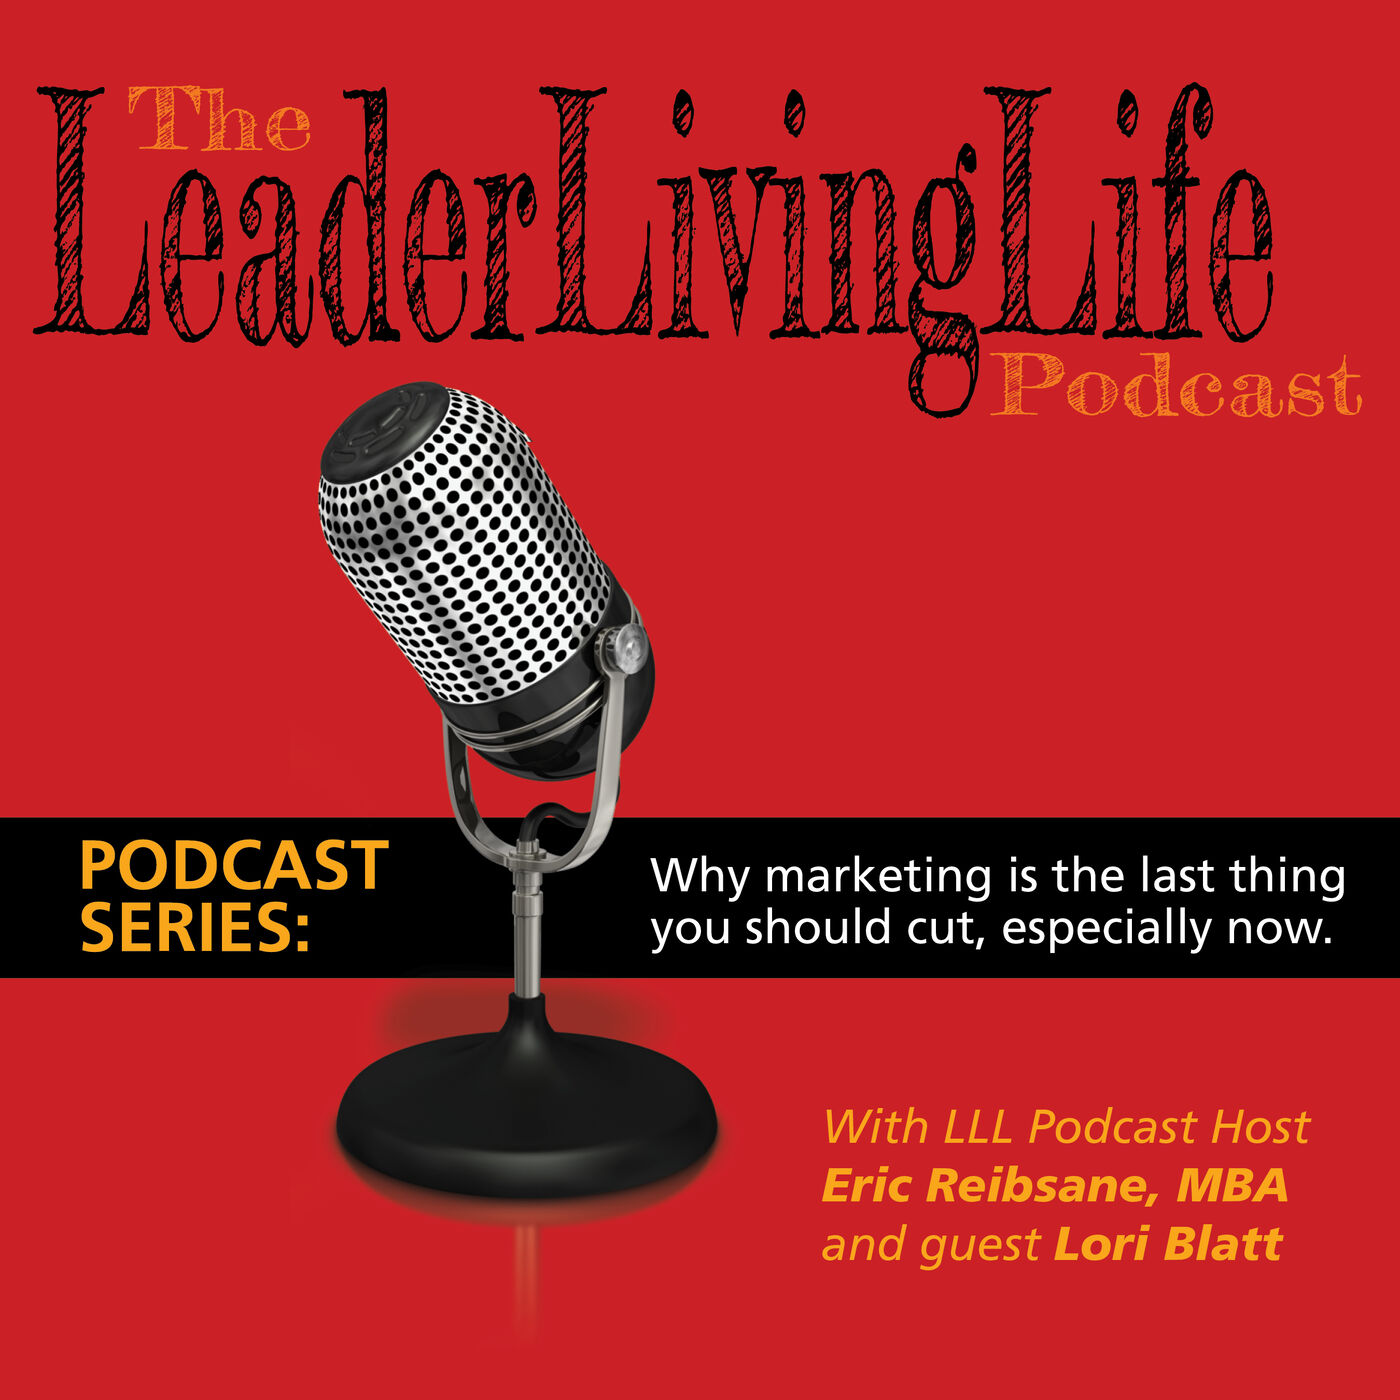 The first in our series on Marketing, featuring Lori Blatt.  We start with why marketing is the last thing you should cut right now.